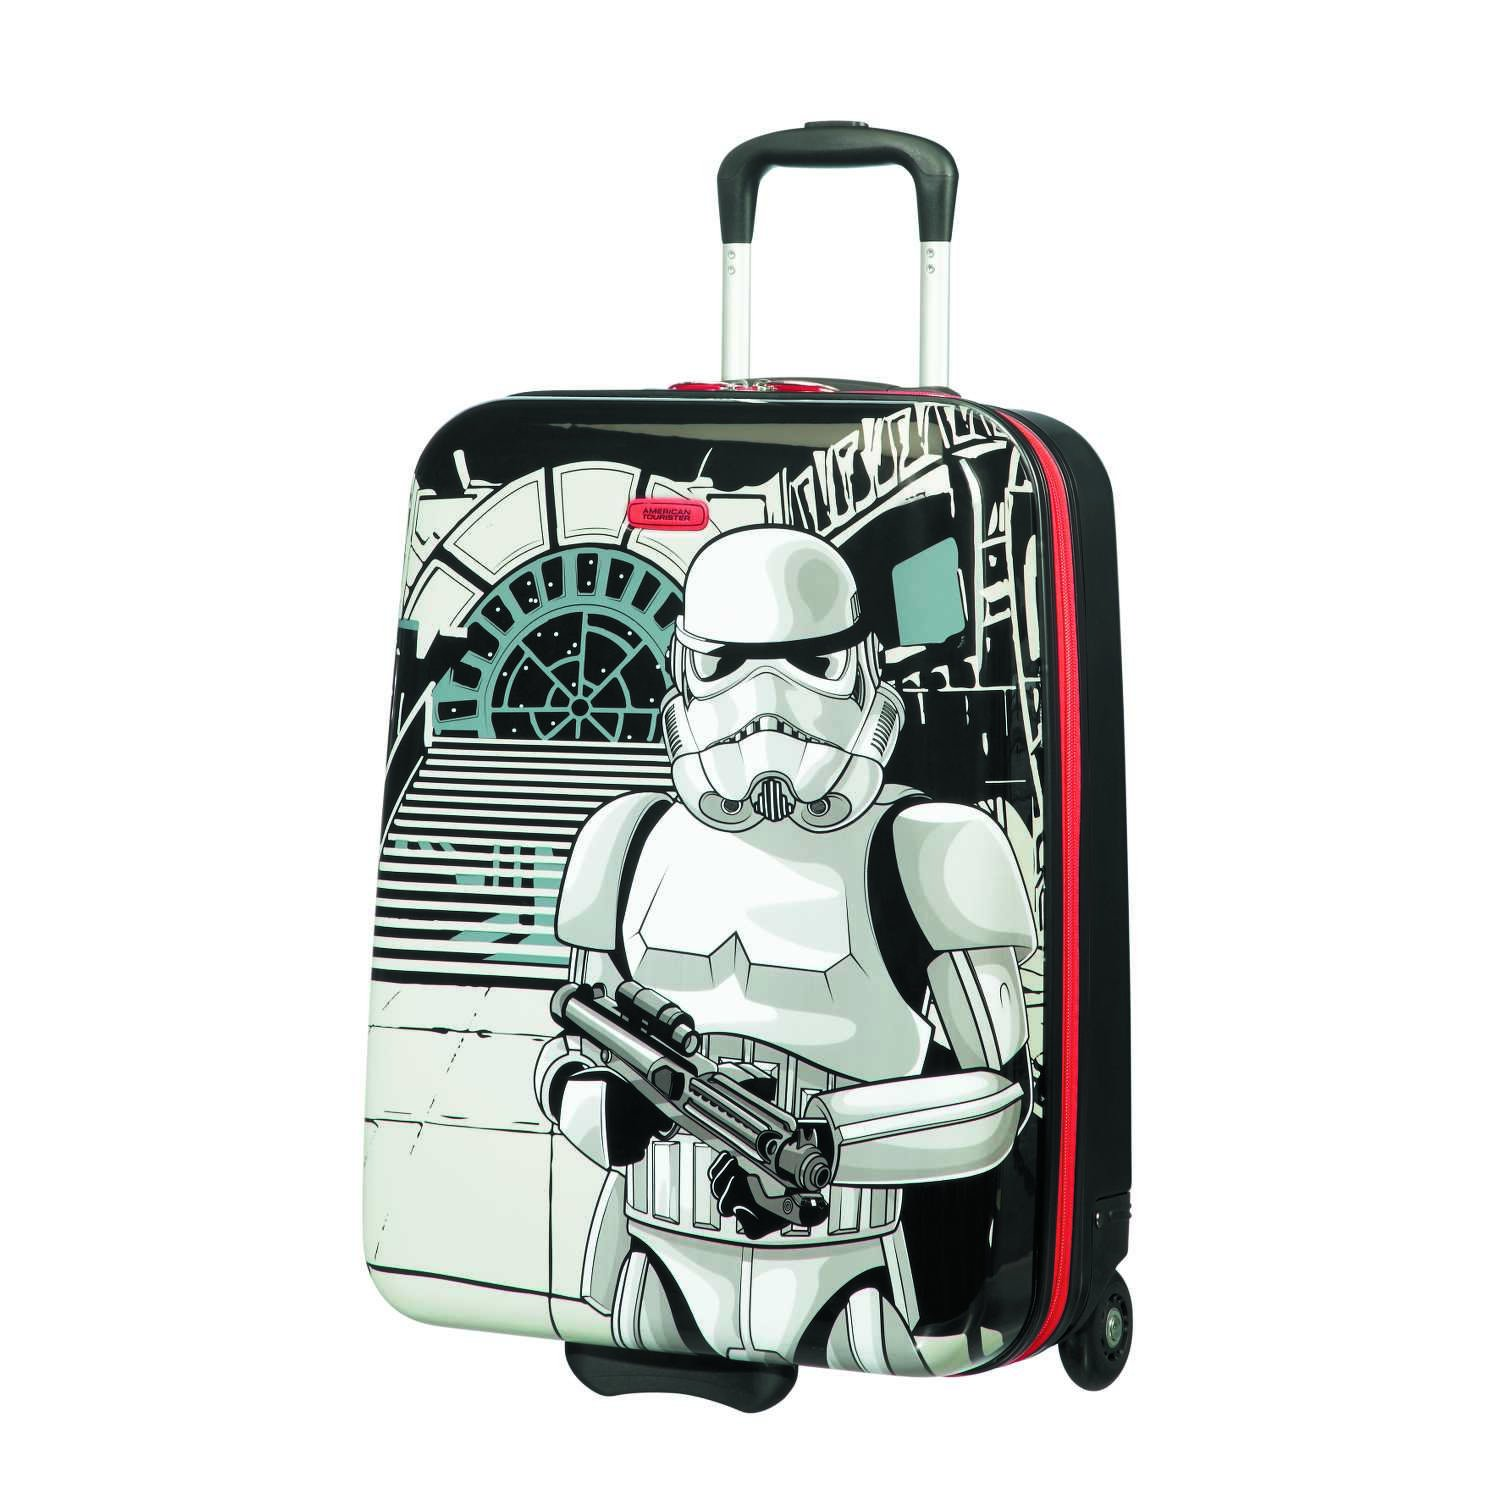 American tourister - Disney New Wonder - Star Wars Upright 55/20, 55 cm, 32.5 L, 3.1 KG